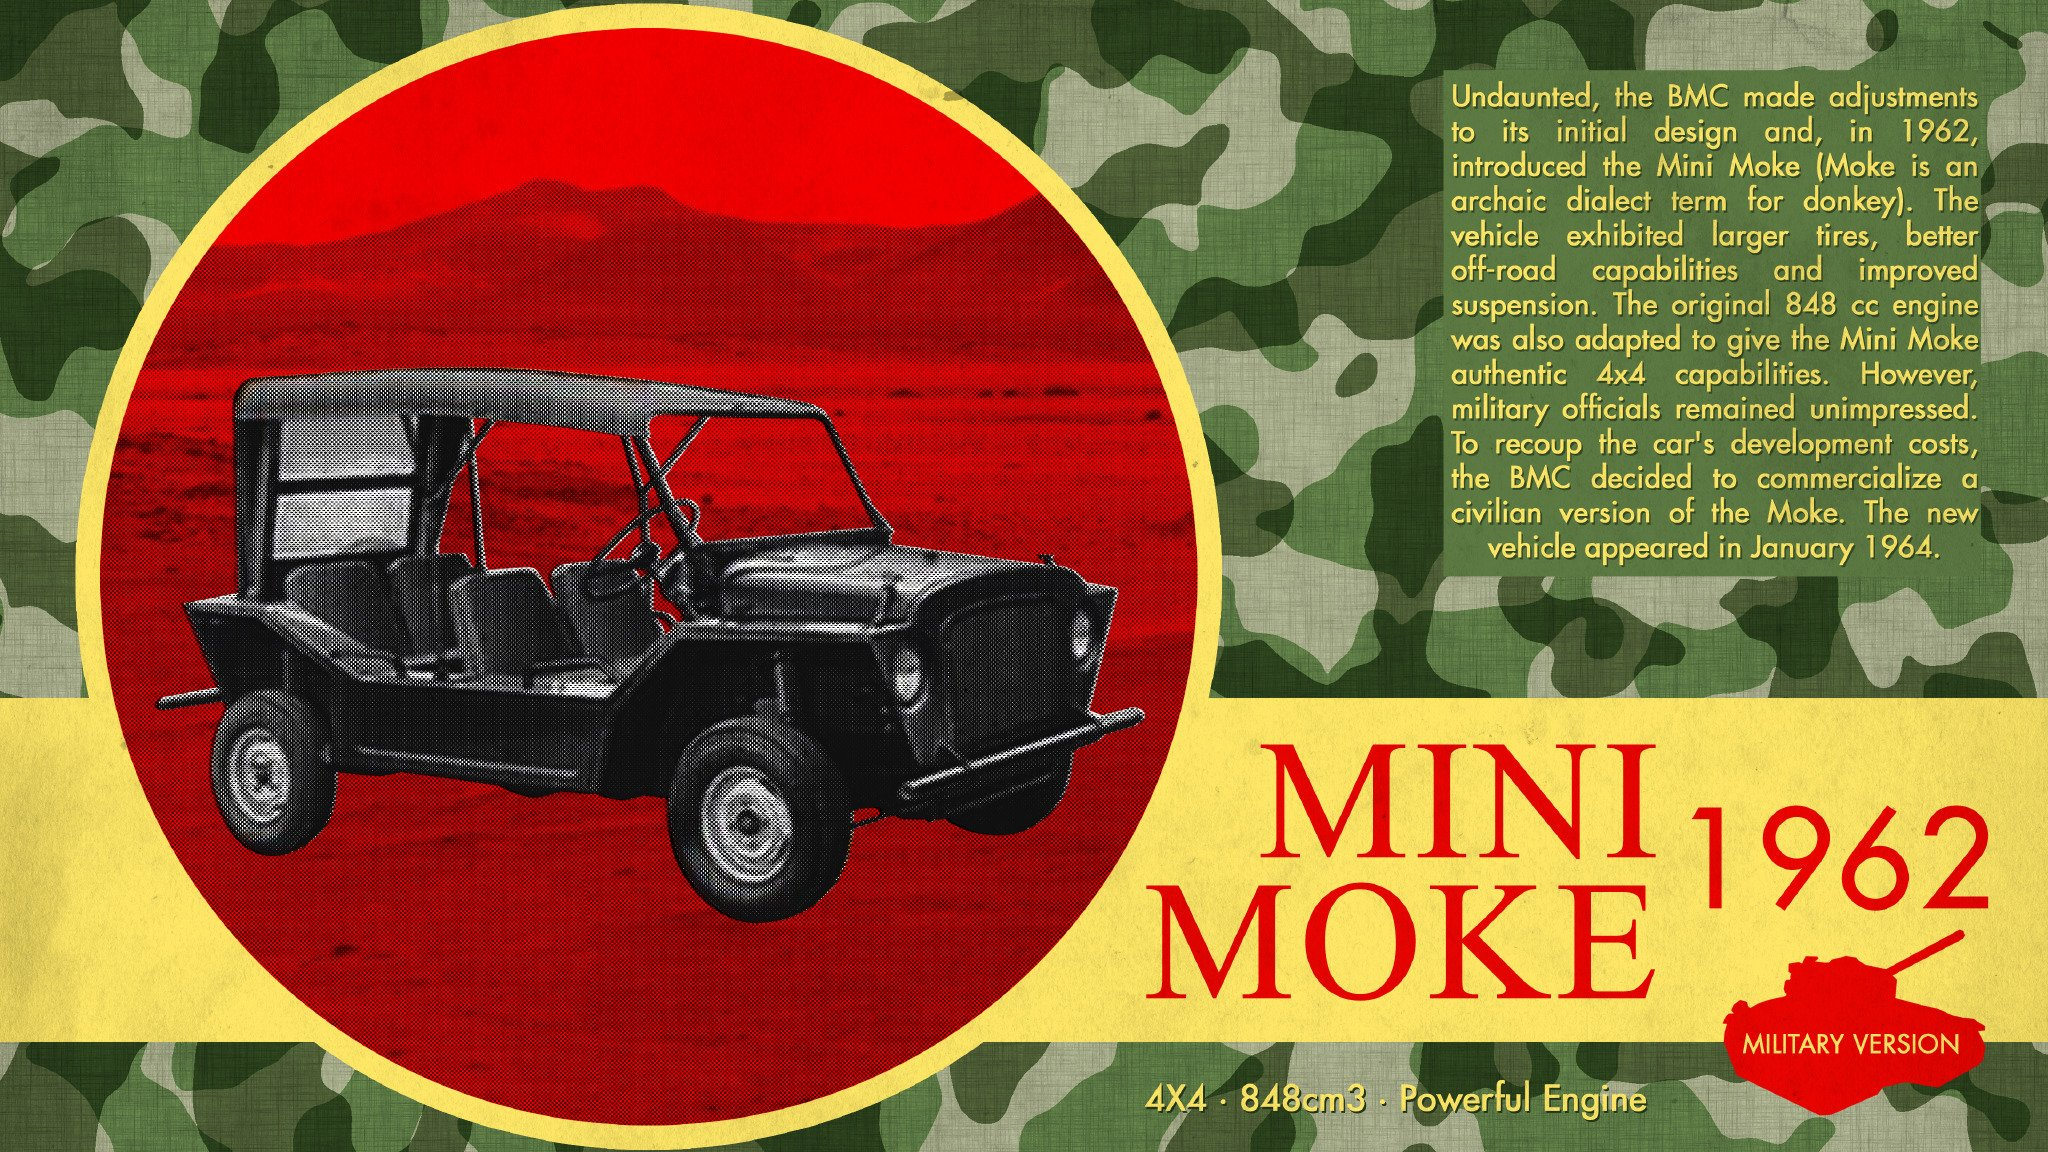 THE MILITARY MINI MOKE